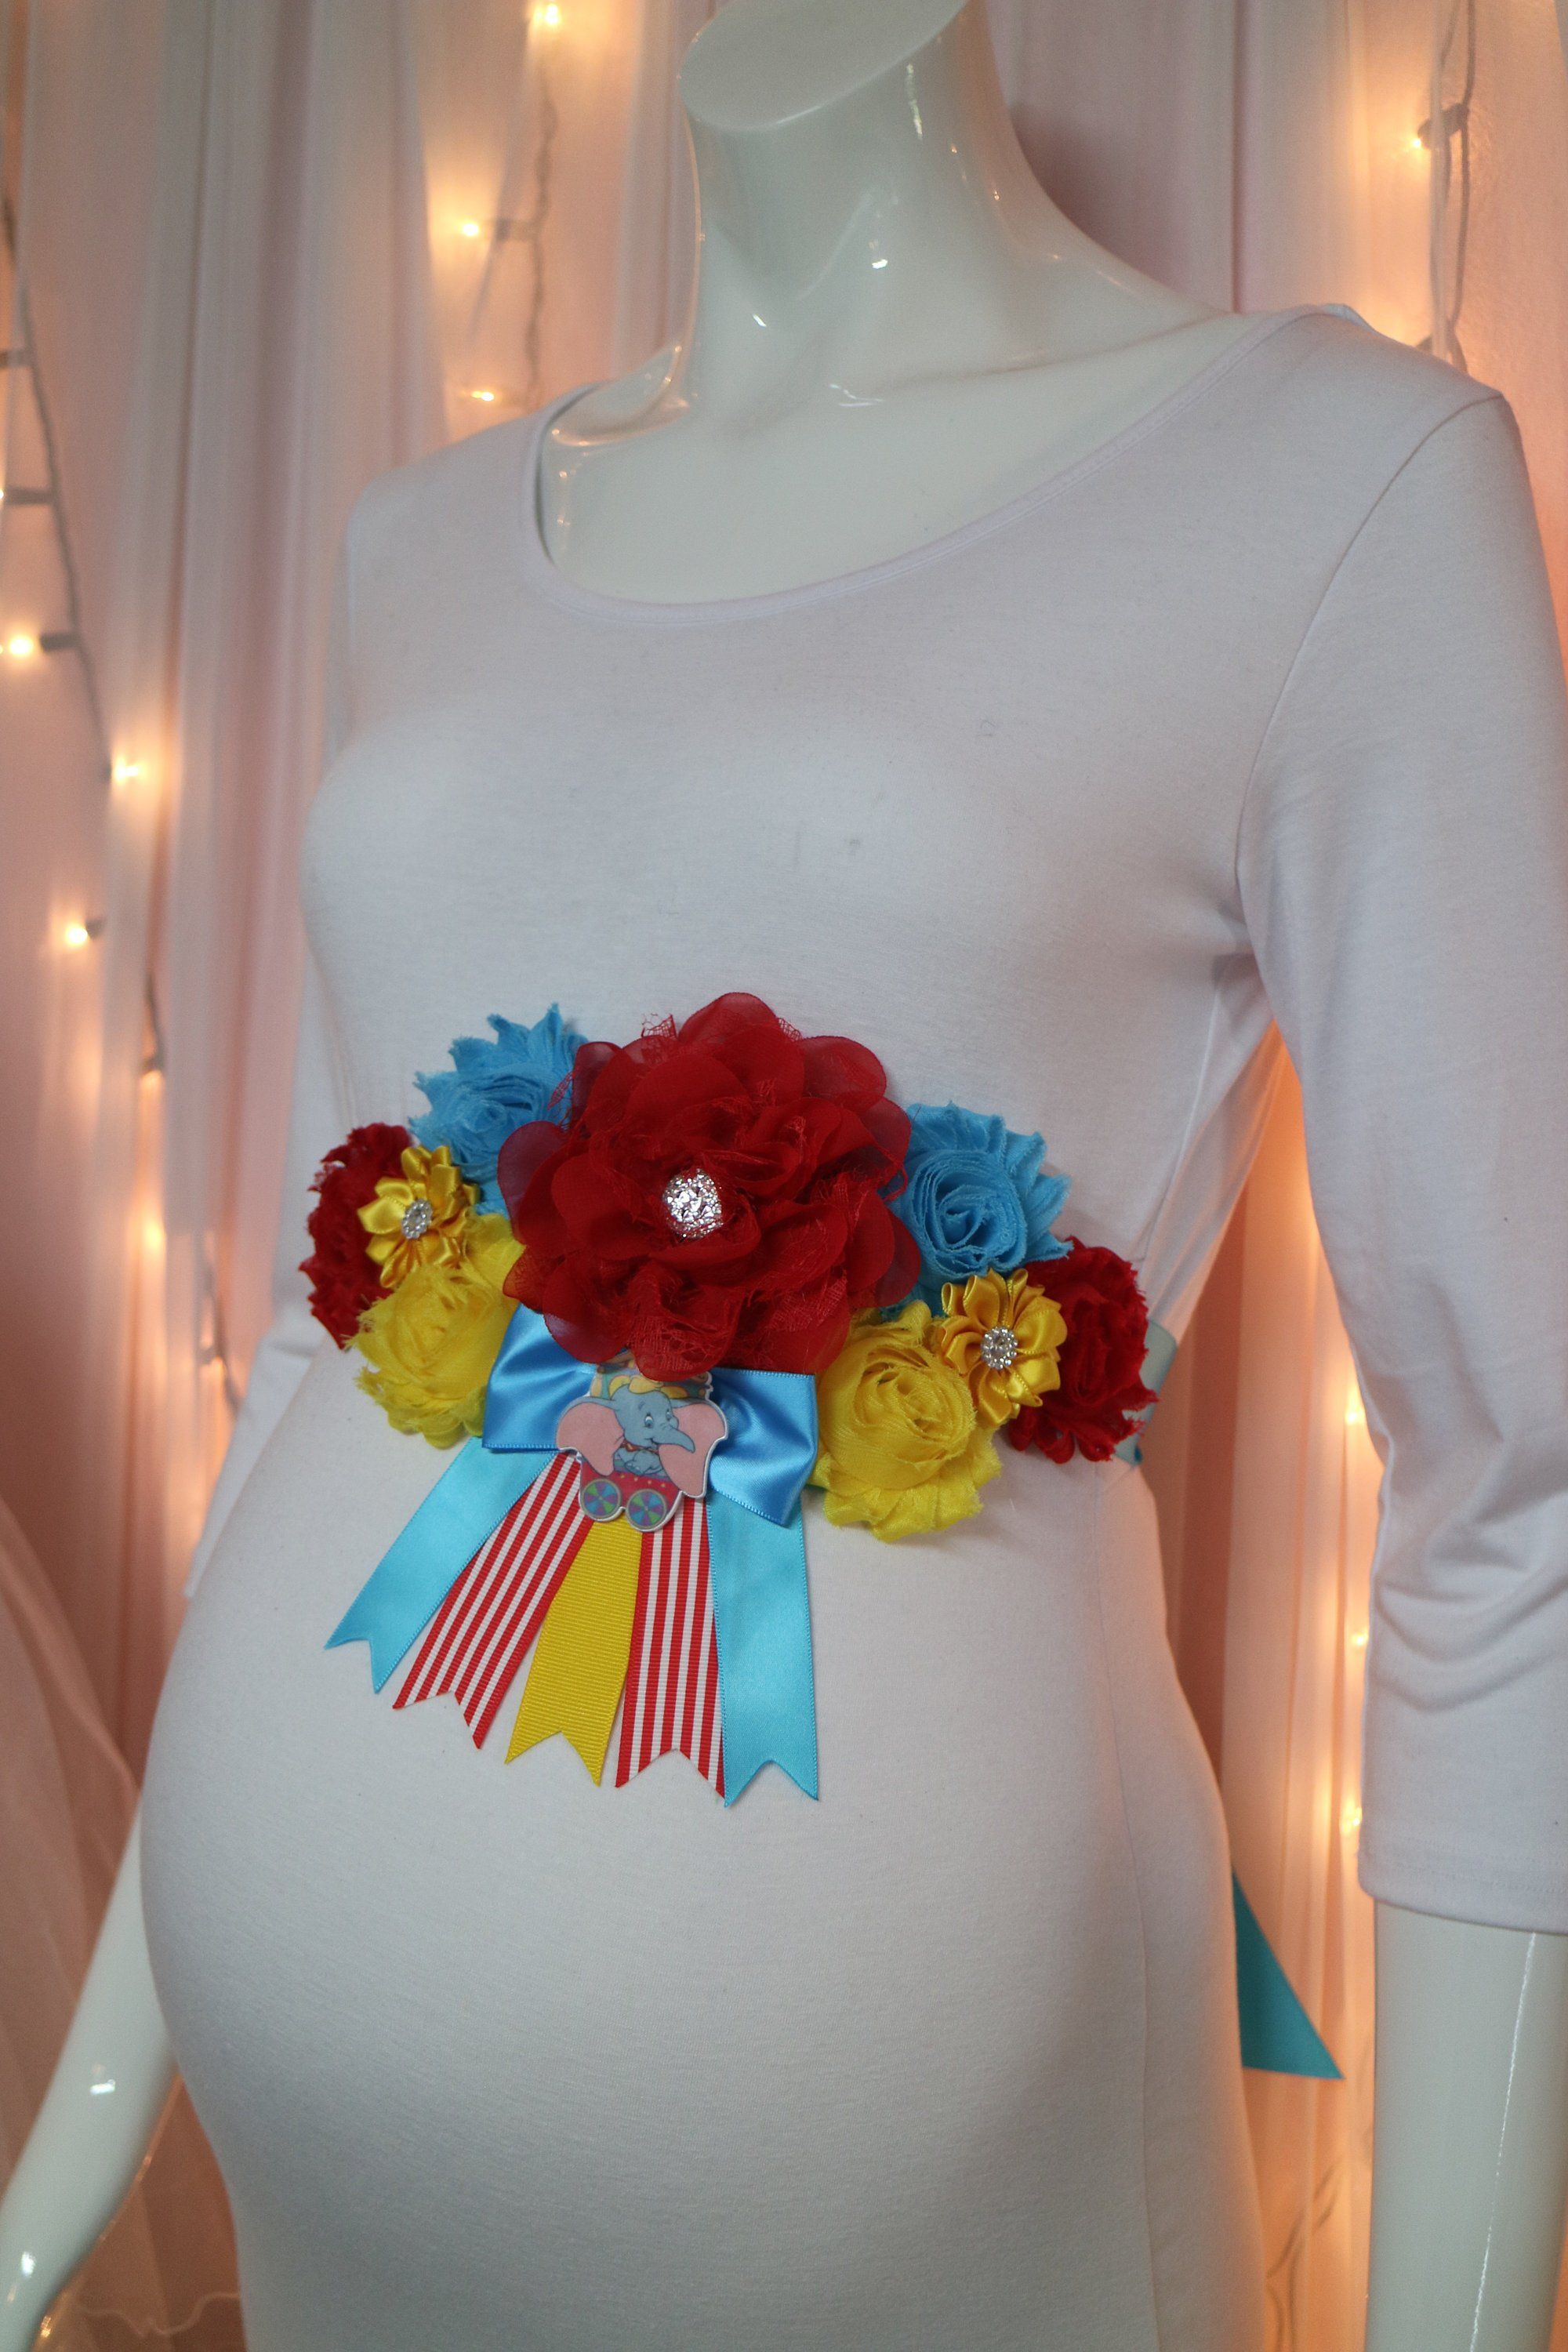 Dumbo Baby Shower Mommy To Be Floral Sash Baby Dumbo Disney Theme Baby Shower Baby Shower Corsage Disney Babies Dumbo Baby Shower Dumbo Baby Shower Theme Baby Shower Corsage